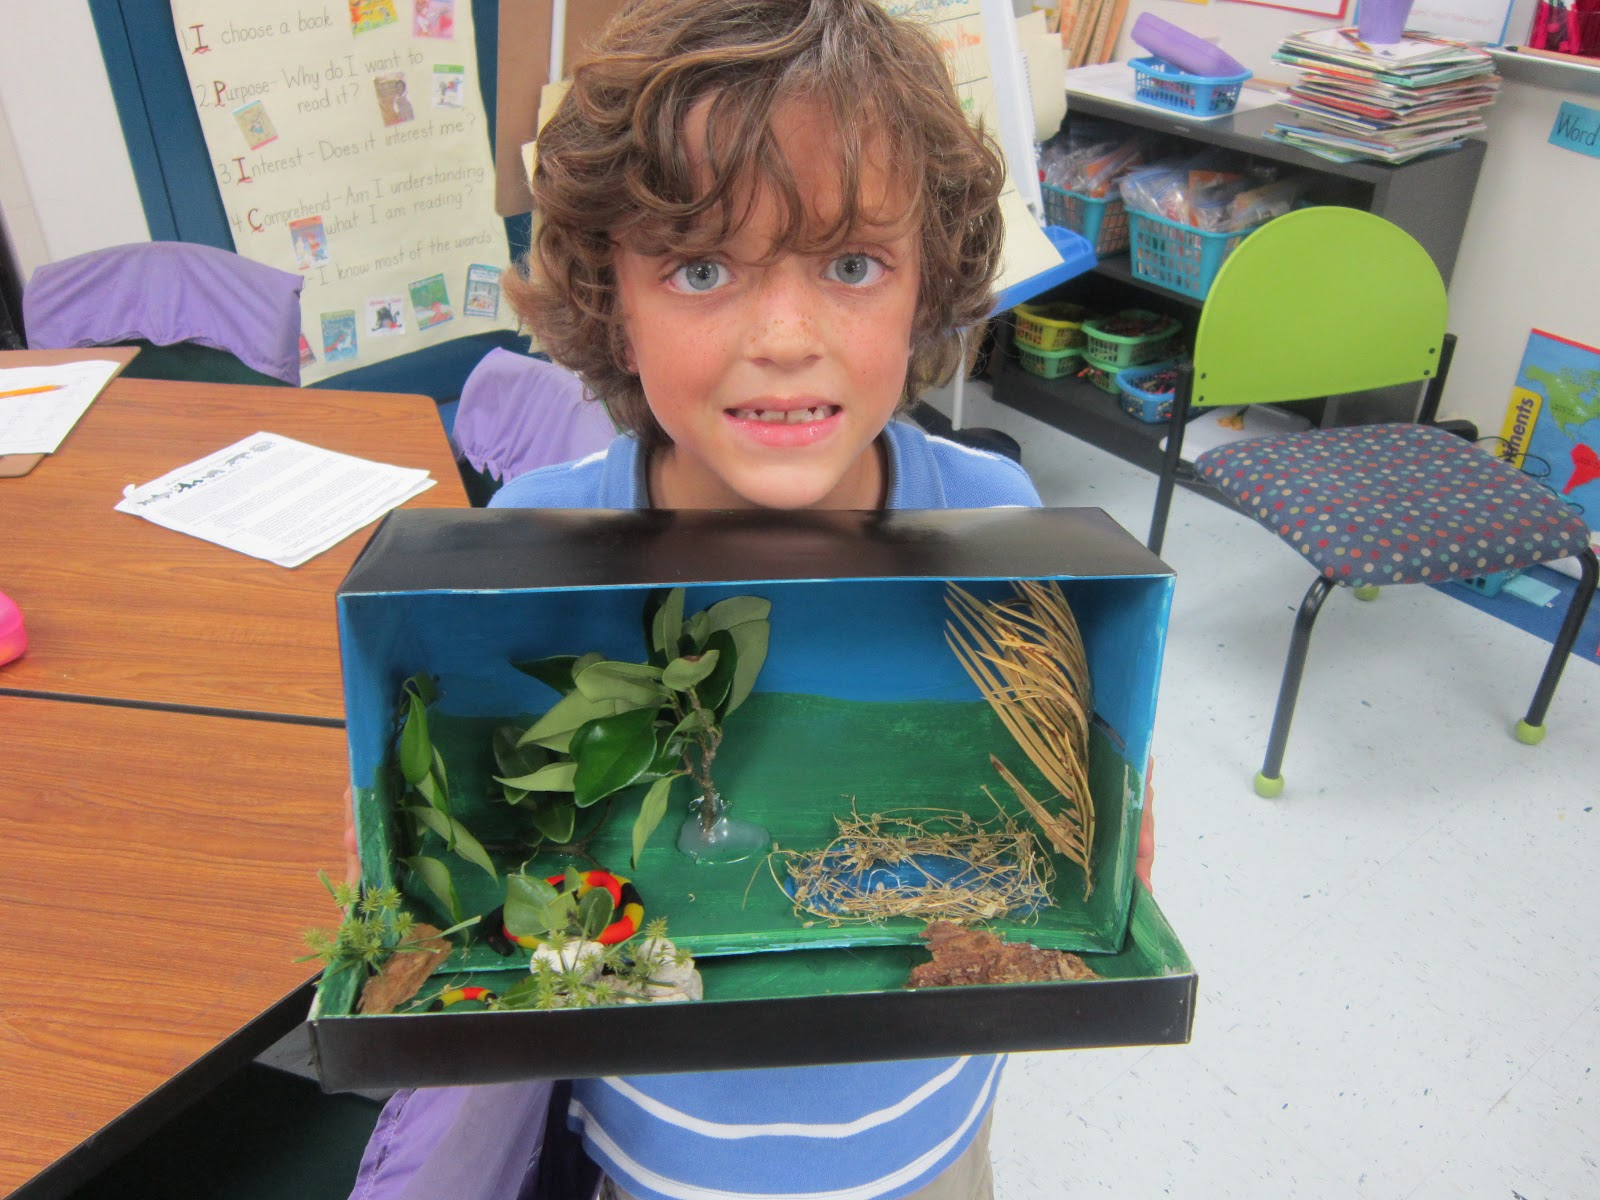 mrs pacciano s post look at these habitat dioramas